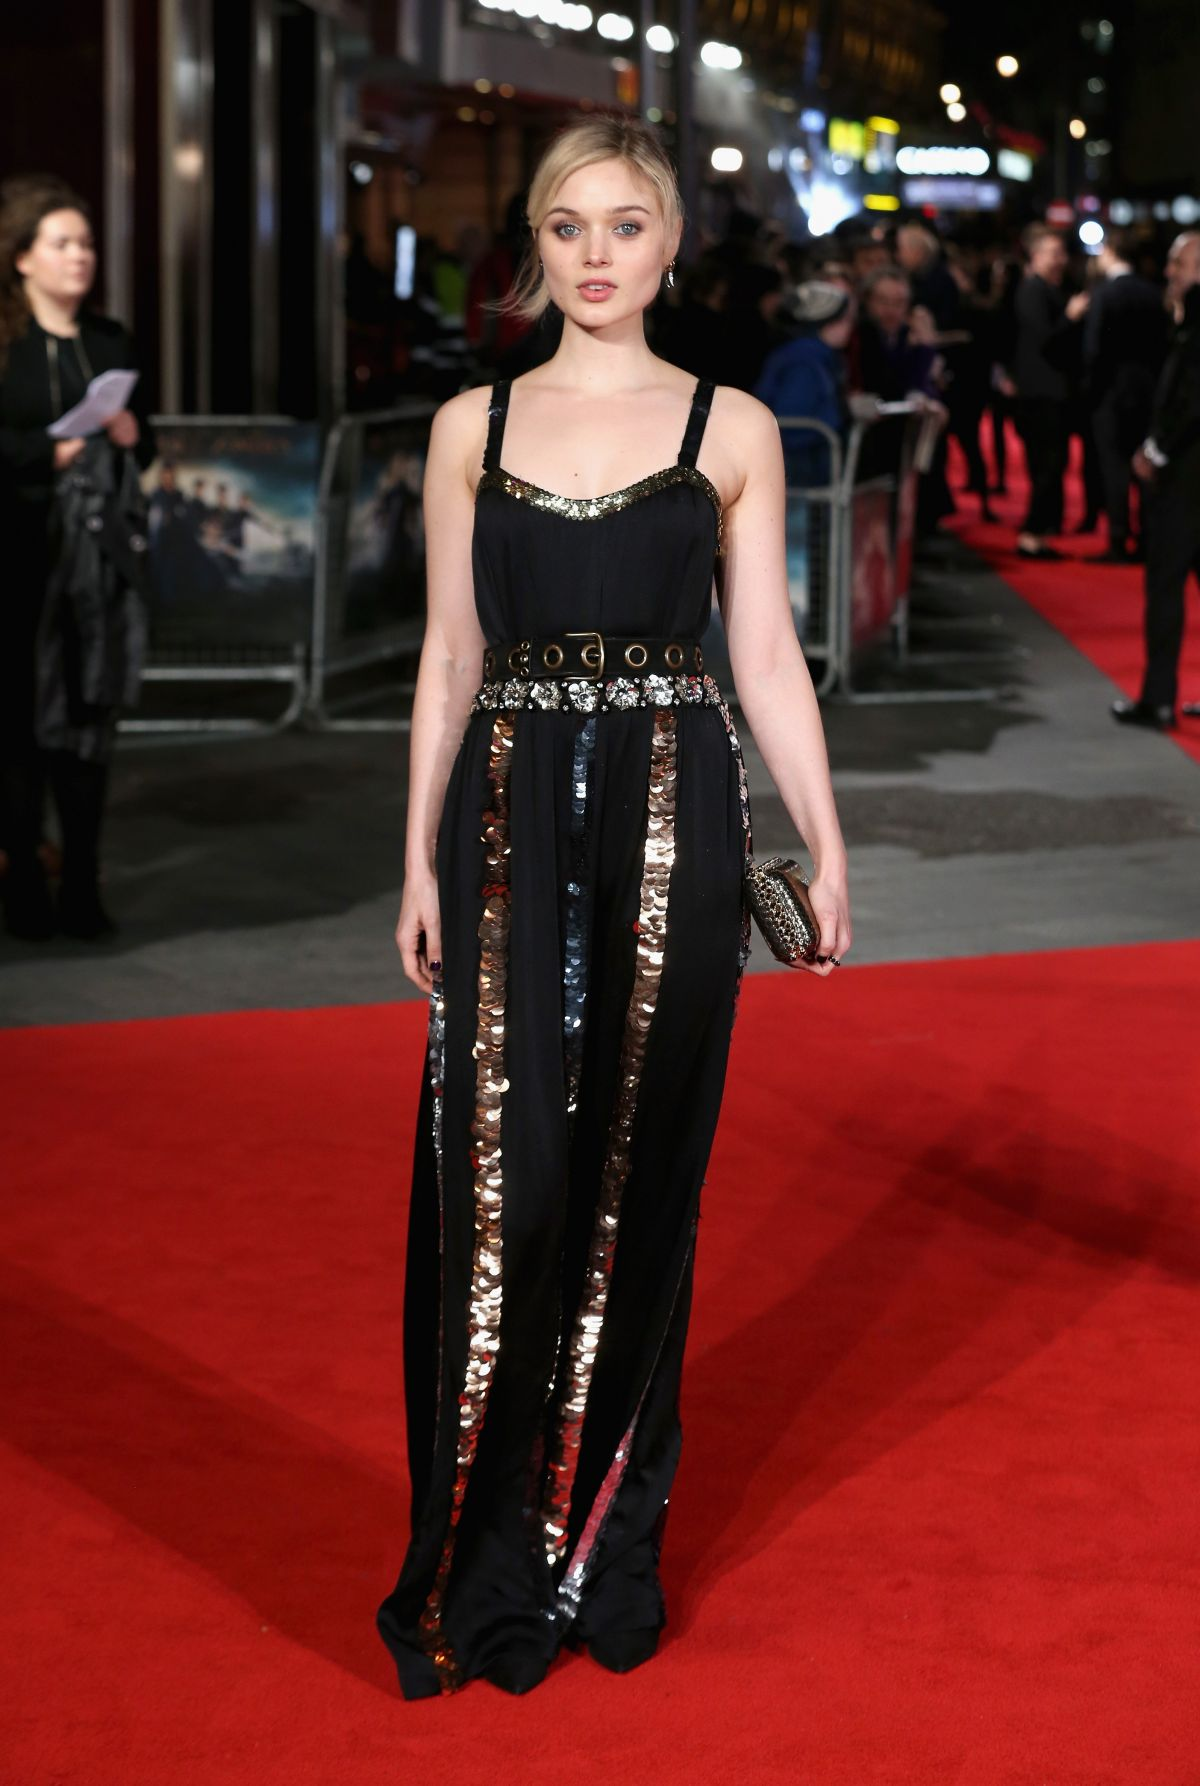 BELLA HEATHCOTE at Pride and Prejudice and Zombies Premiere in London 02/01/2016